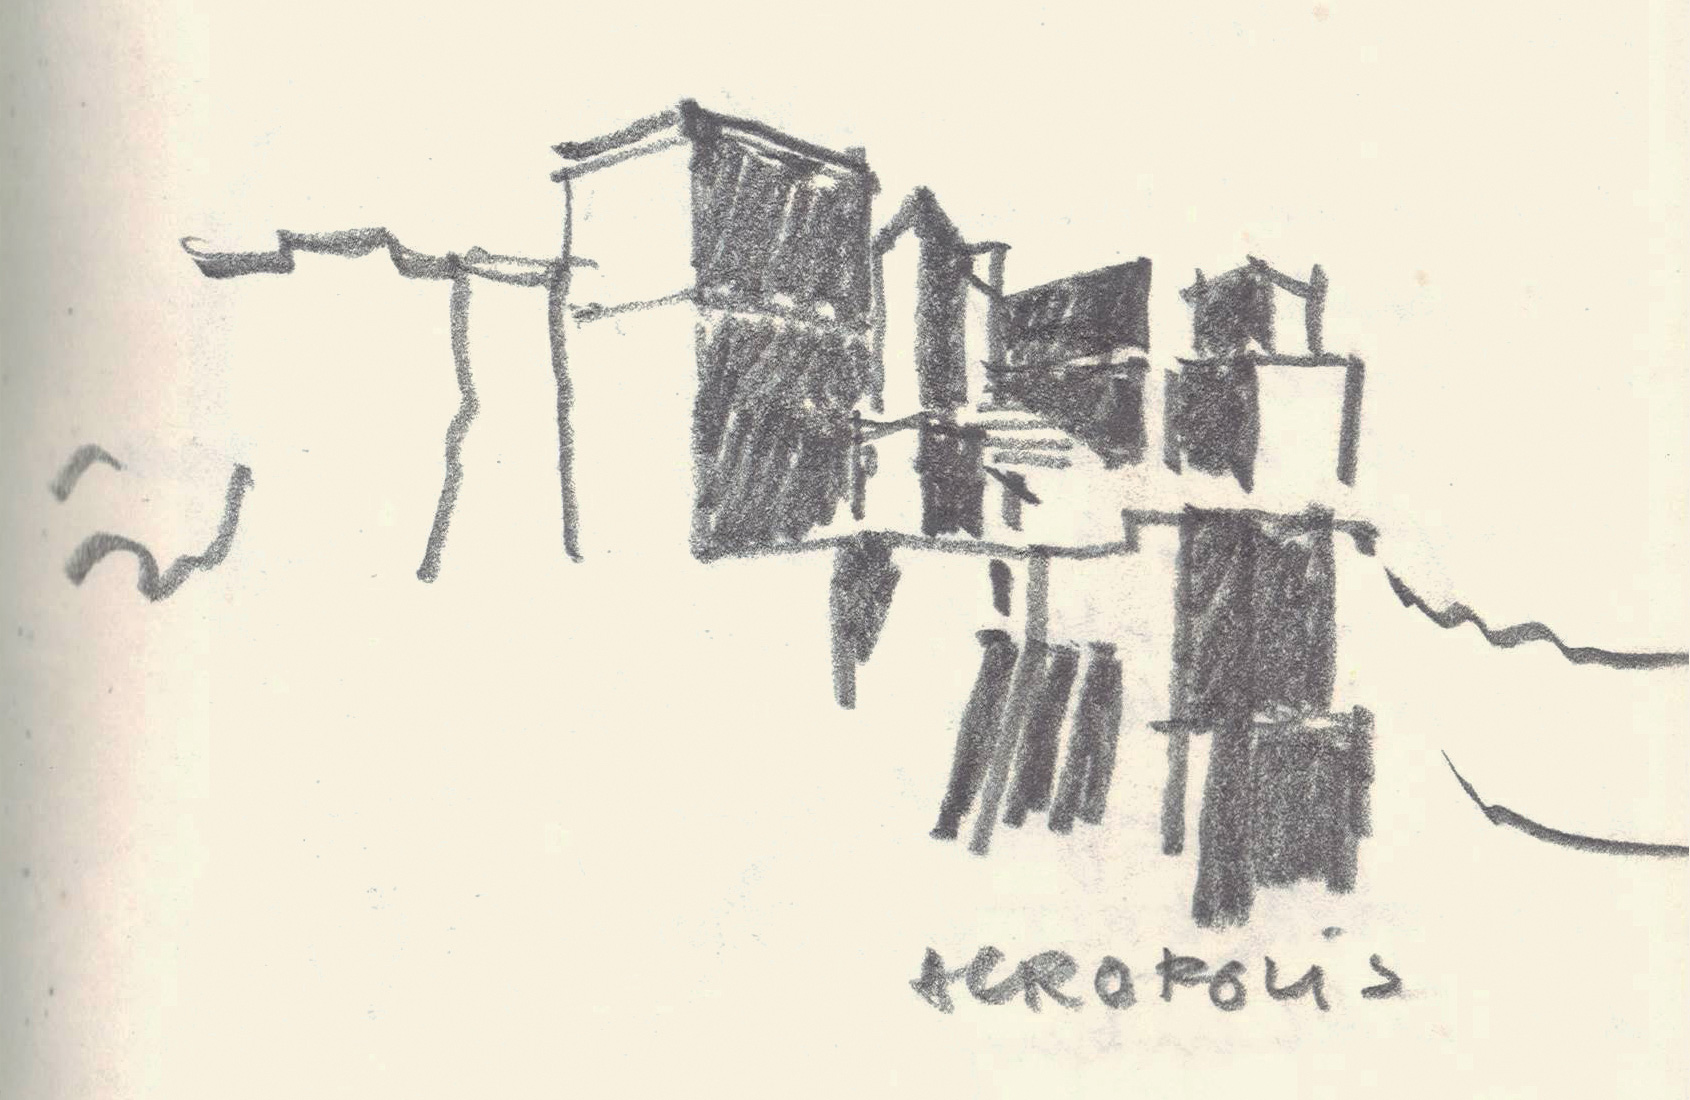 Sketch of the Acropolis by Riyaz Tayyibji |Acropolis |Riyaz Tayyibji | STIRworld